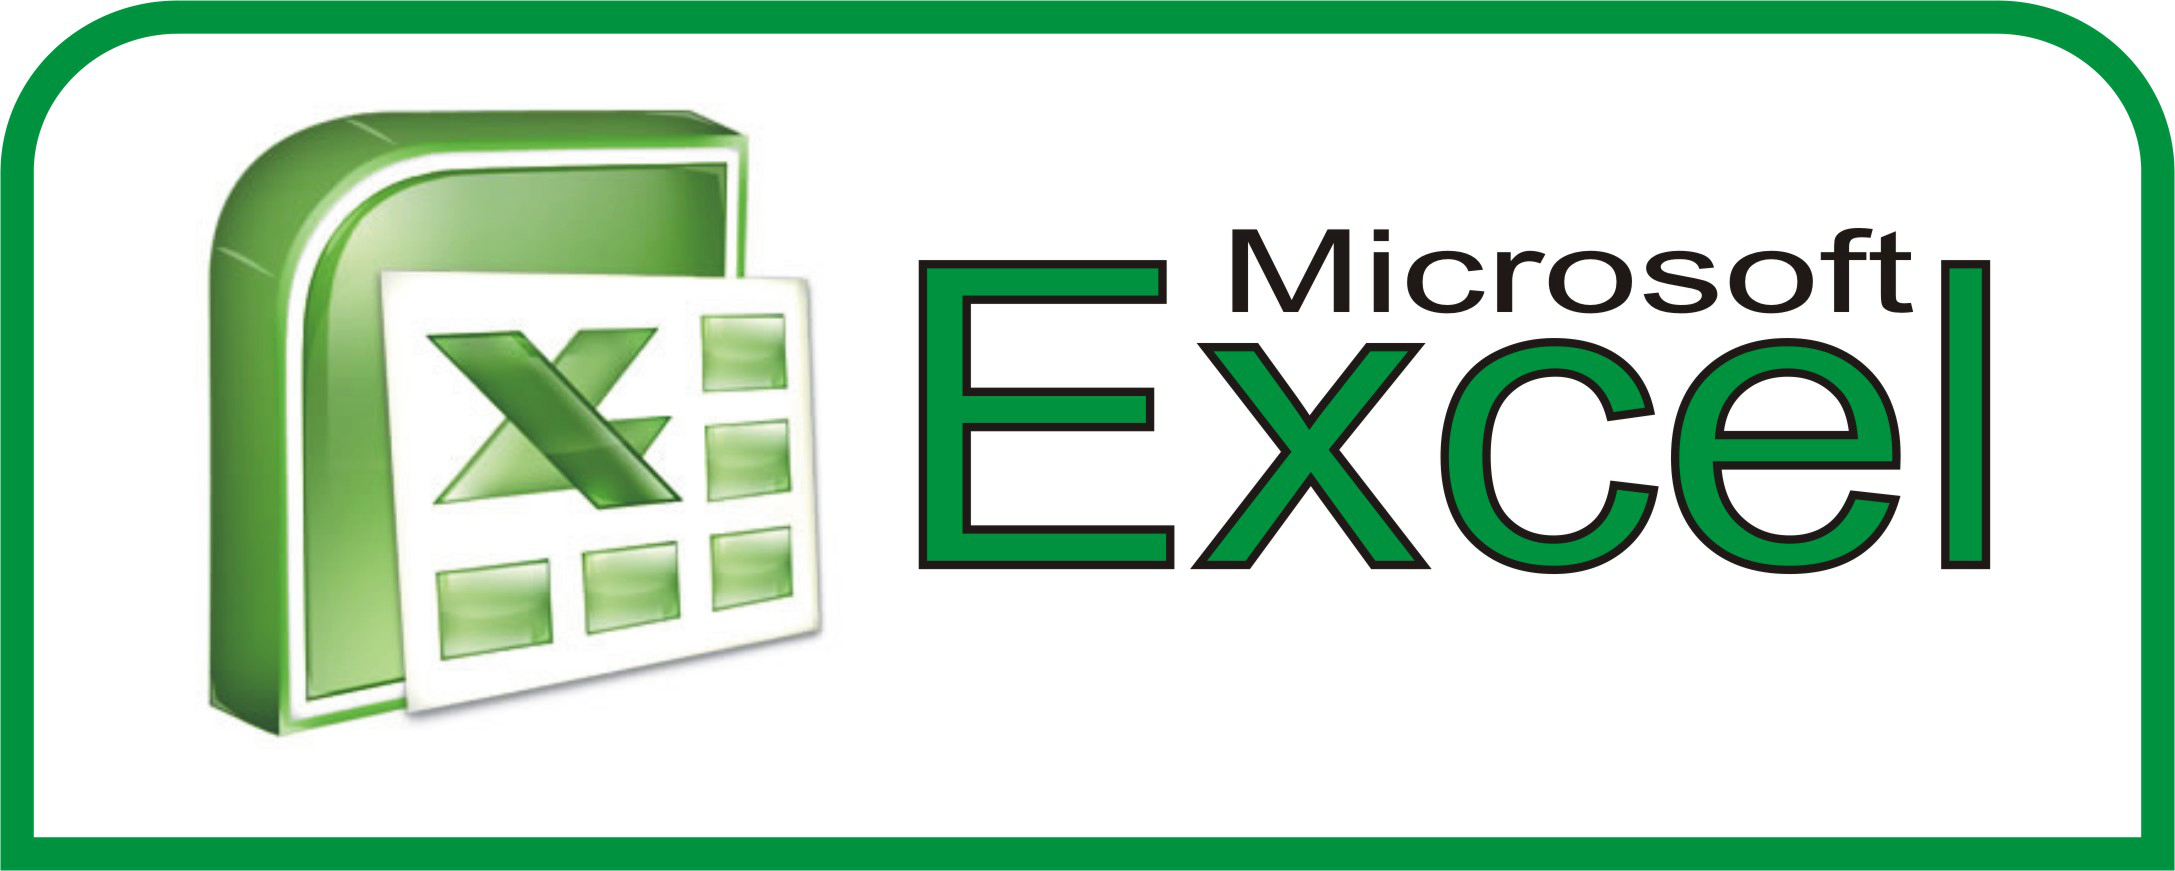 Ediblewildsus  Unique  Excel Shortcuts You Probably Didnt Know About  Techdissected With Engaging Excel Saga Going Too Far Besides Recipe Cost Calculator Excel Furthermore Excel London Hotels With Amazing How To Calculate Net Cash Flow In Excel Also Convert Excel To Word Online In Addition Copying And Pasting In Excel And Excel In Powerpoint As Well As Excel Vba Timevalue Additionally Excel Rowscount From Techdissectedcom With Ediblewildsus  Engaging  Excel Shortcuts You Probably Didnt Know About  Techdissected With Amazing Excel Saga Going Too Far Besides Recipe Cost Calculator Excel Furthermore Excel London Hotels And Unique How To Calculate Net Cash Flow In Excel Also Convert Excel To Word Online In Addition Copying And Pasting In Excel From Techdissectedcom